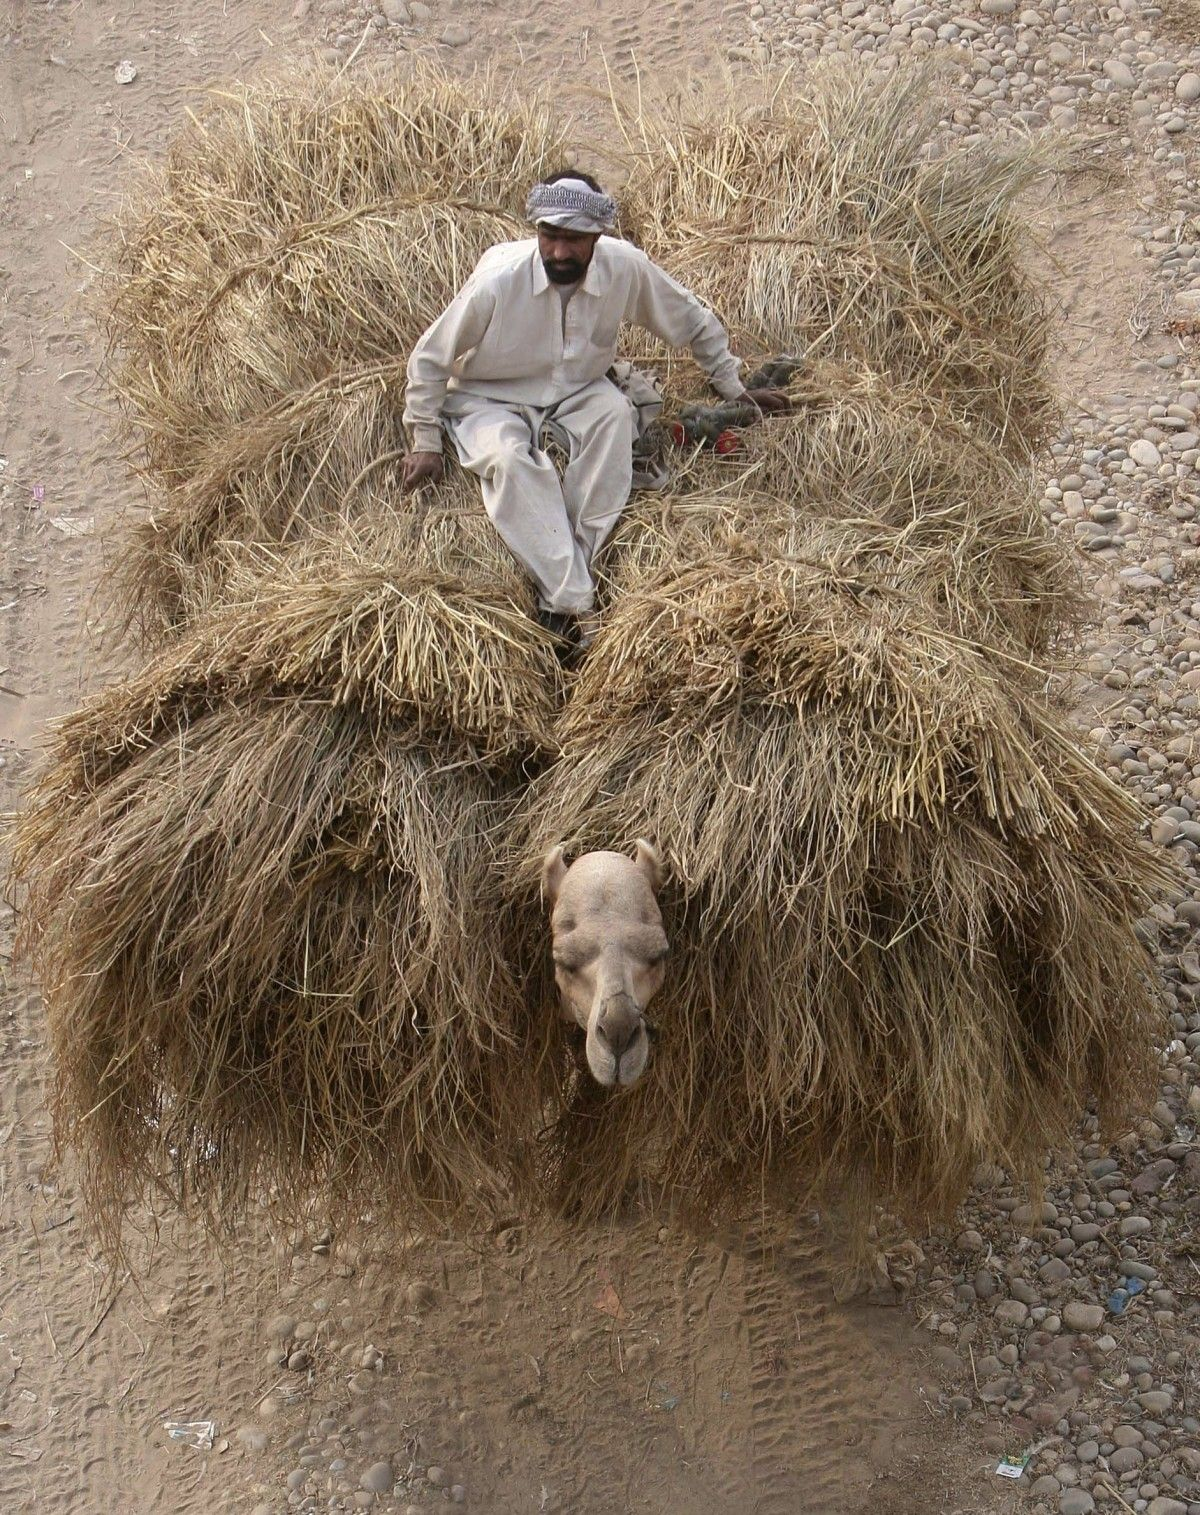 A man rides a camel loaded with fodder. It shows how the animal has been treated.